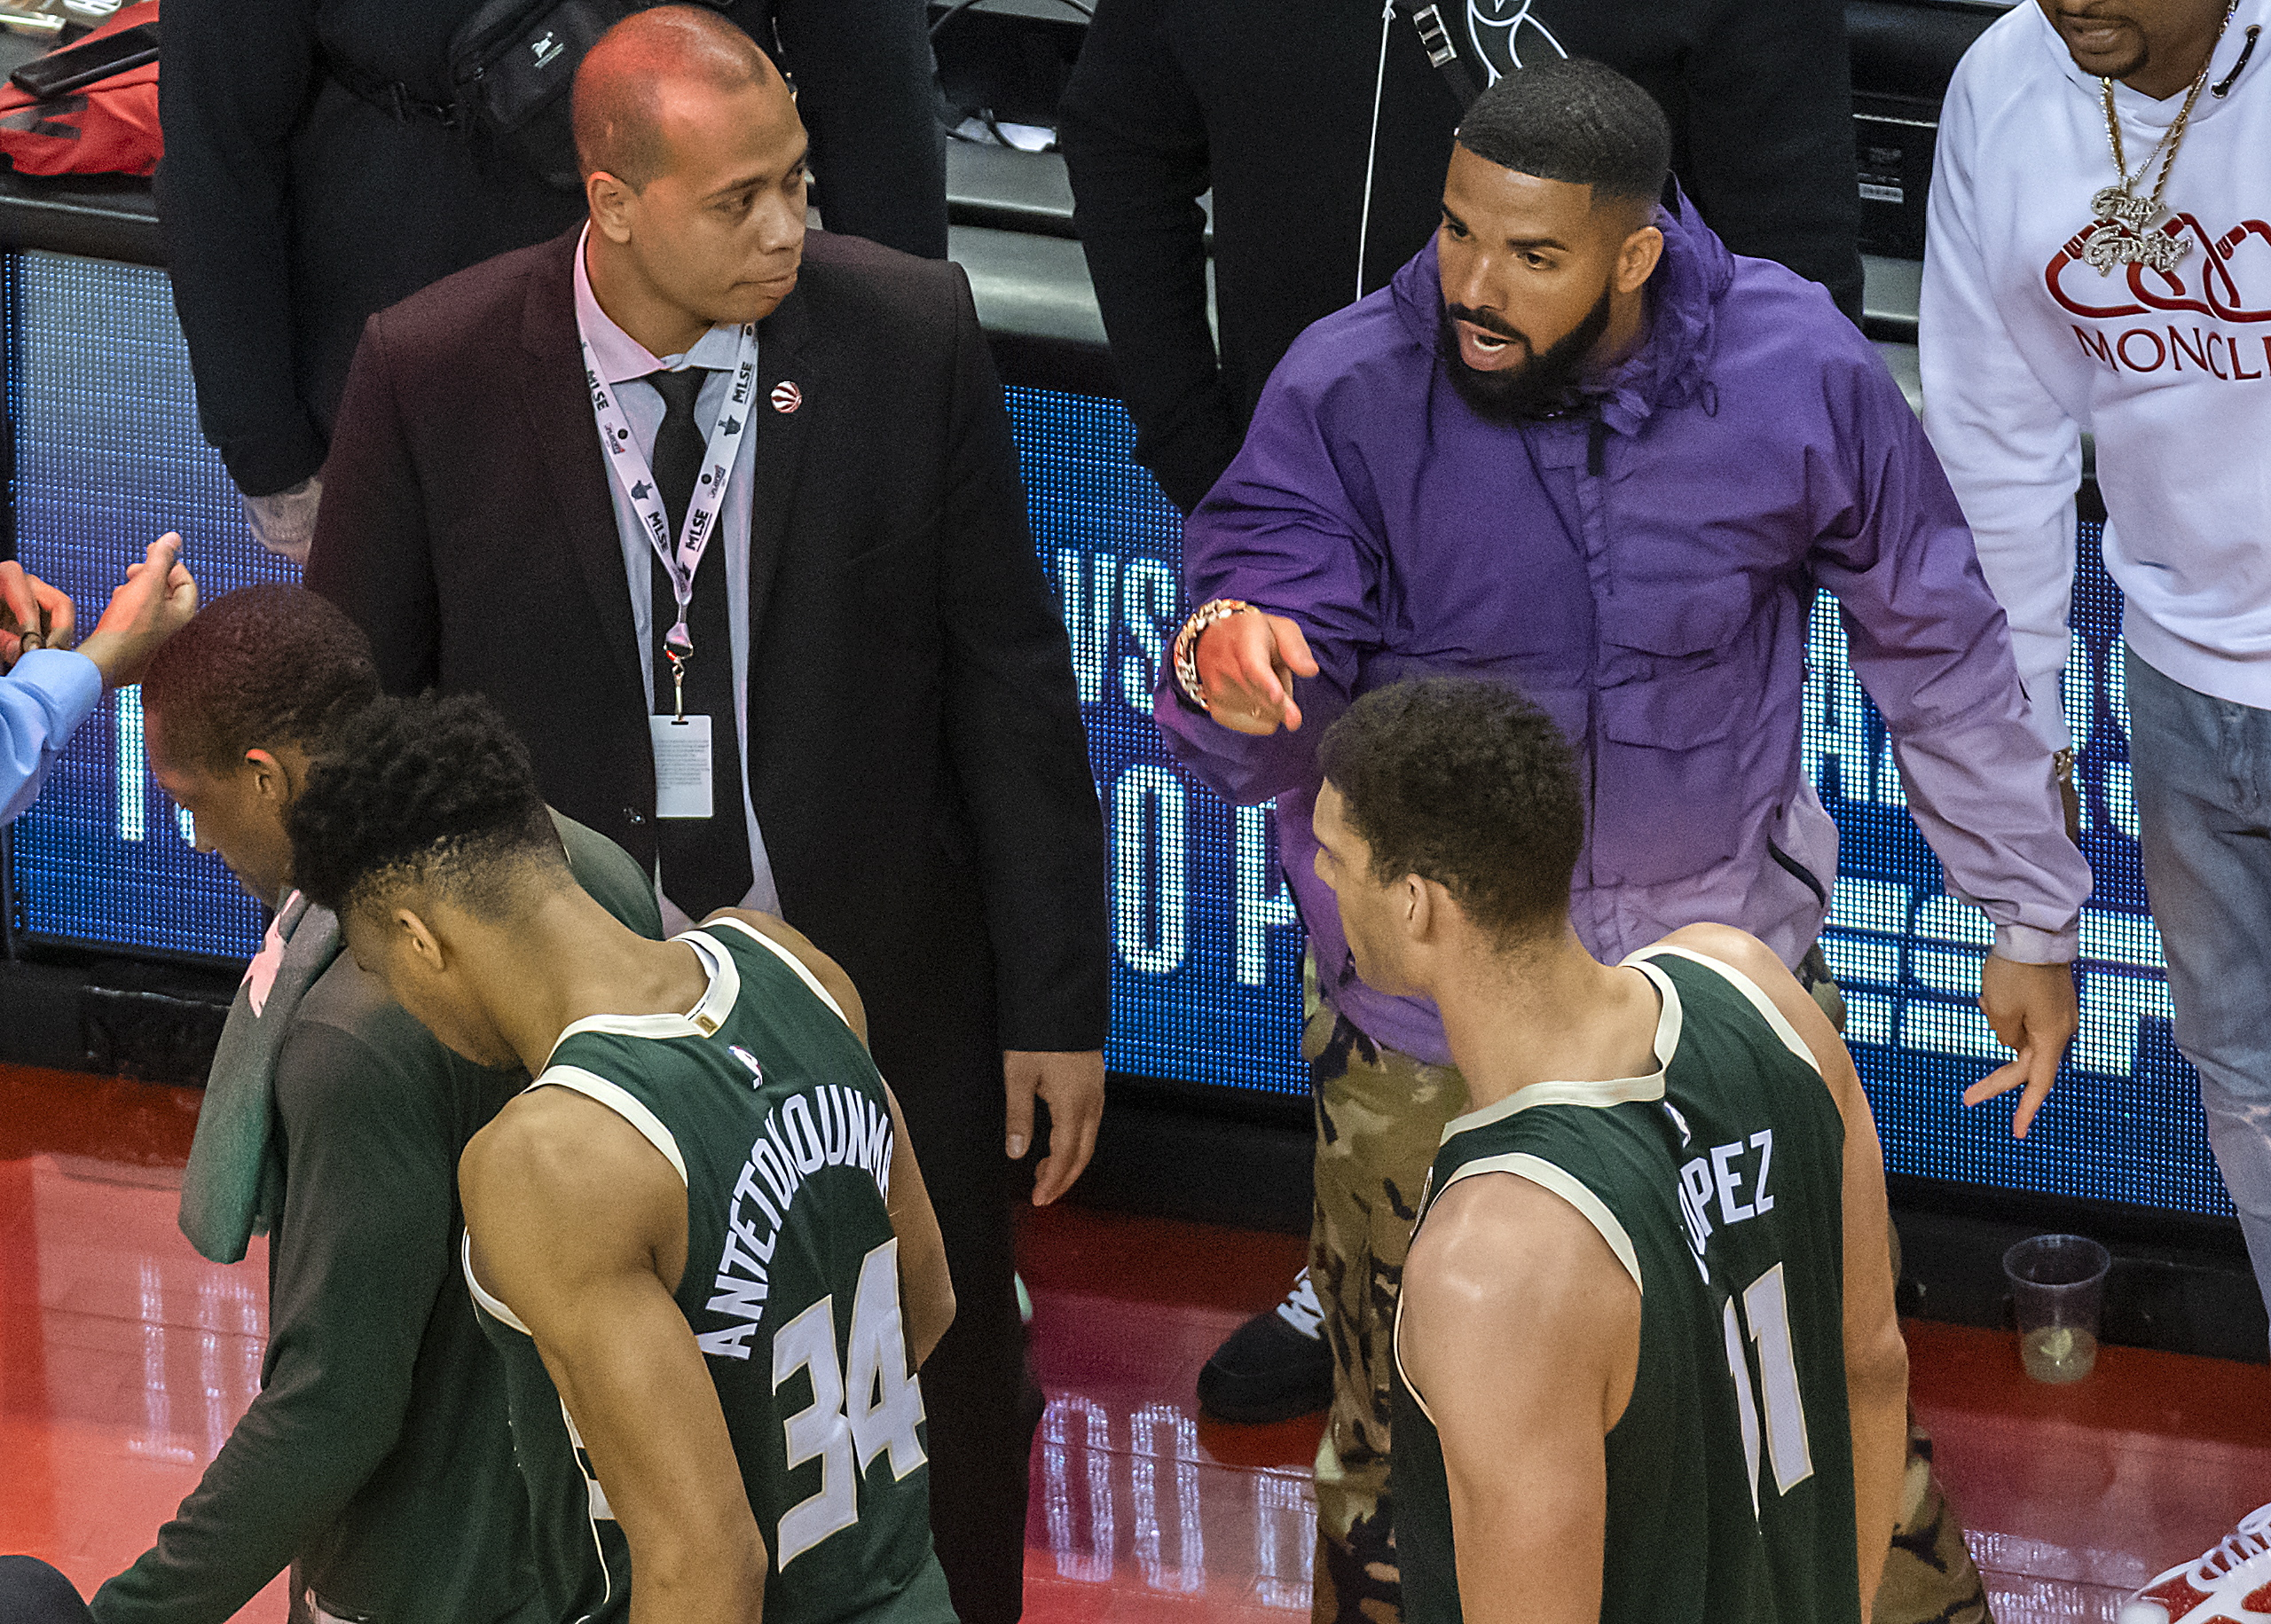 469e8473789 Canadian rap artist Drake (R, rear) yells at Milwaukee Bucks forward  Giannis Antetokounmpo (L, front) after the NBA Eastern Conference Finals  Game 3 ...